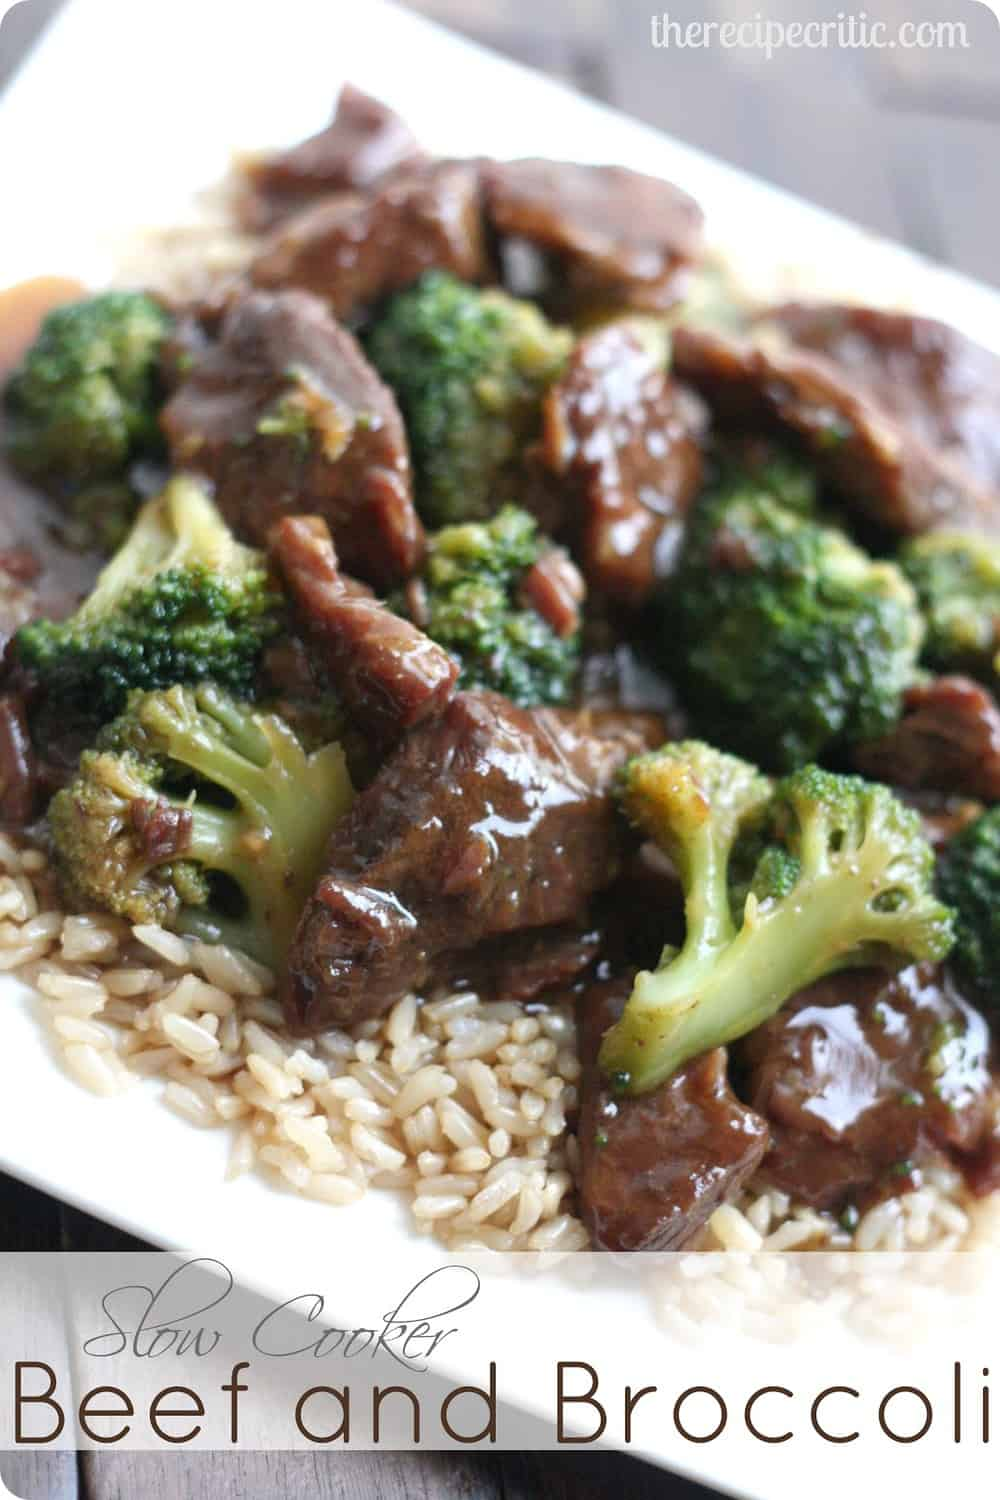 Slow cooker beef and broccoli the recipe critic recipe adapted from table for two slowcookerbroccolibeef4 forumfinder Images